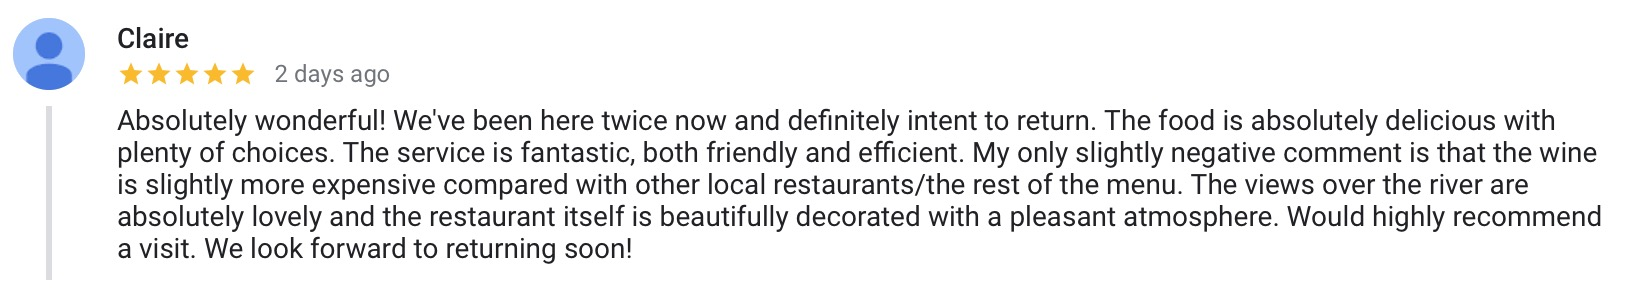 Review left on Google